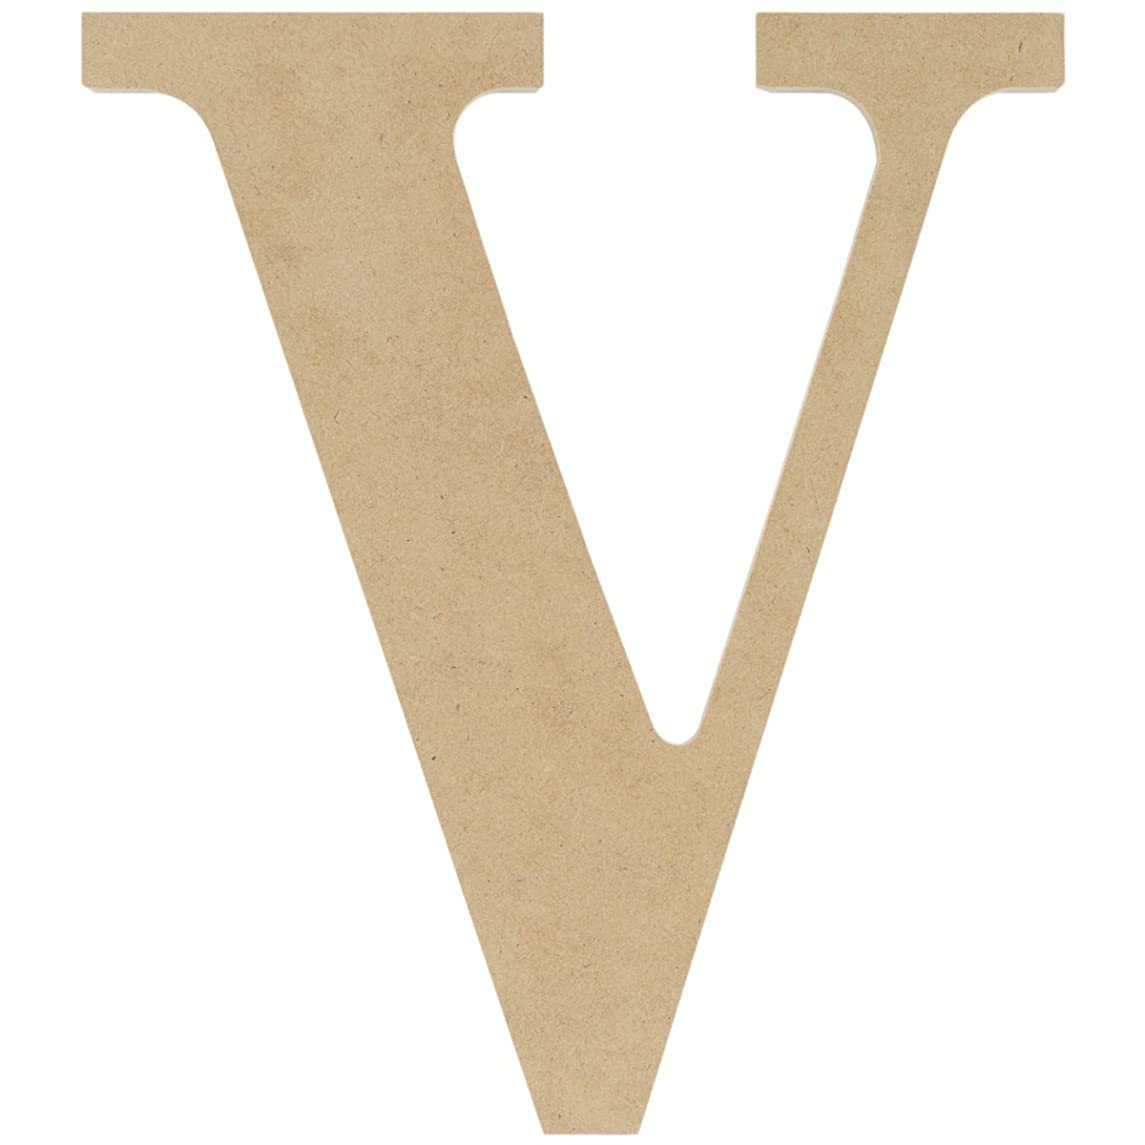 MPI MDF Classic Font Wood Letters and Numbers, 9.5-Inch, Letter V